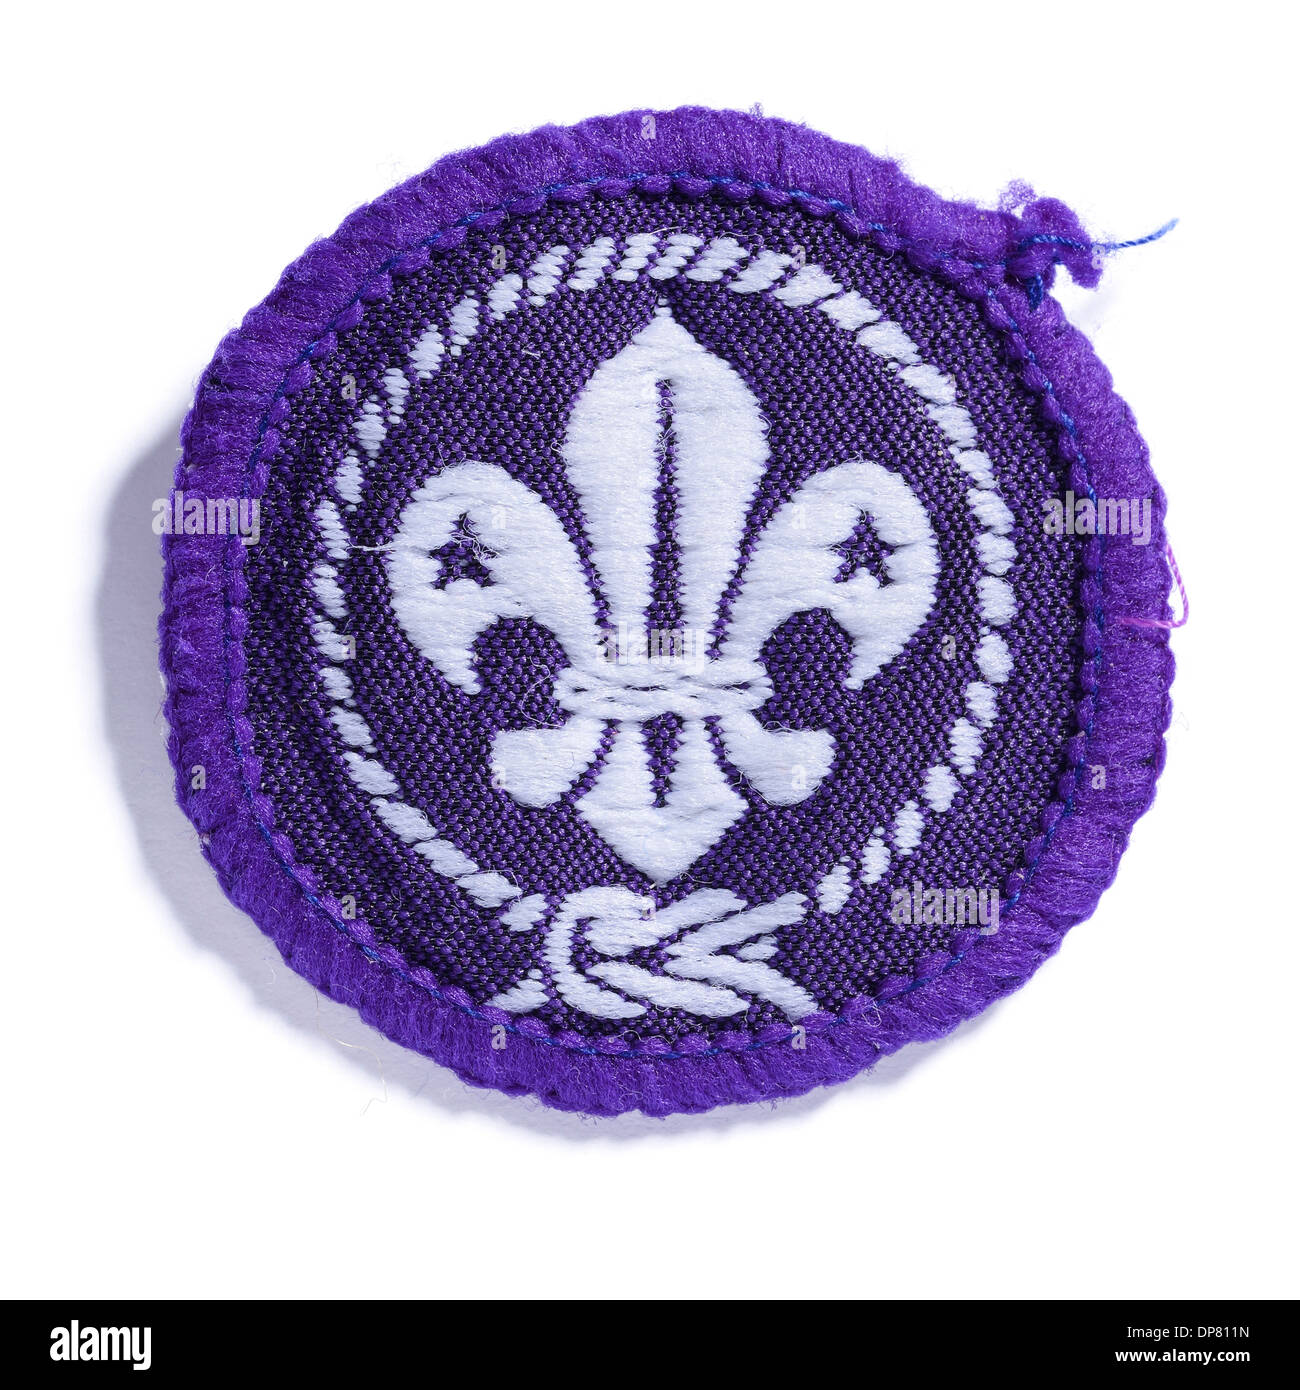 Round purple Scout badge - Stock Image